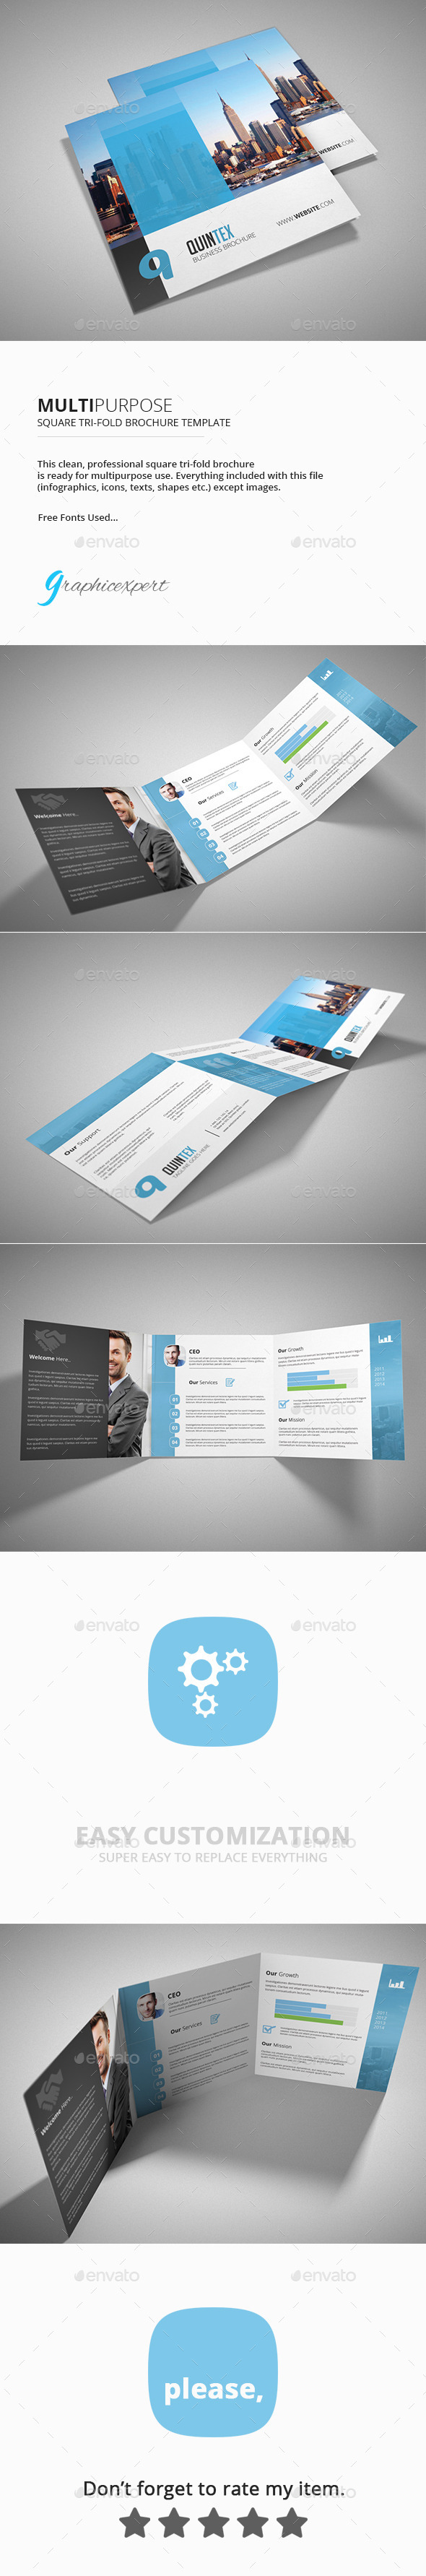 GraphicRiver Square Tri-Fold Brochure Multipurpose 10284908